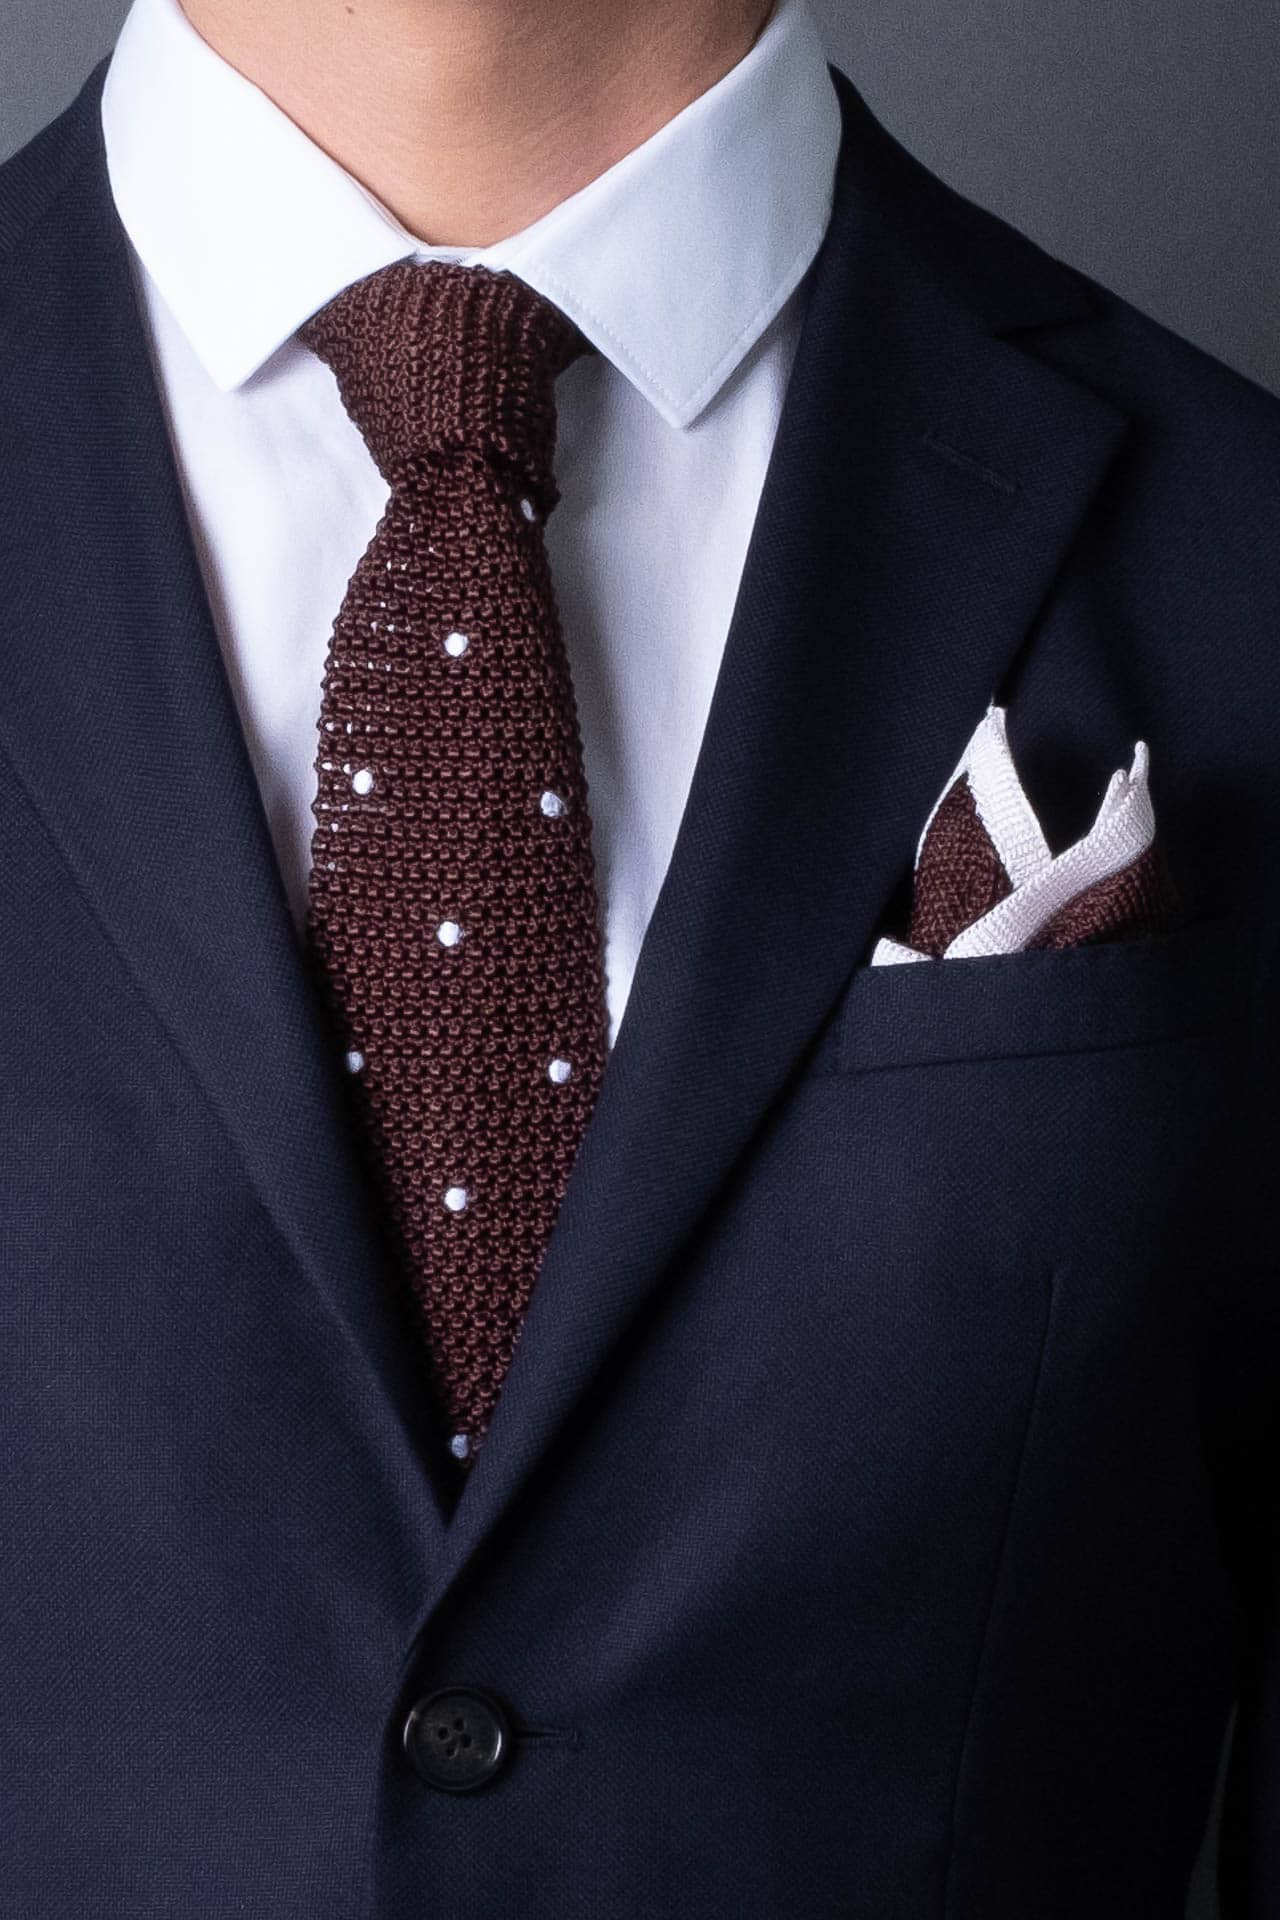 silk-knitted-tie-with-square-tip-brown-with-polka-dots-made-in-italy